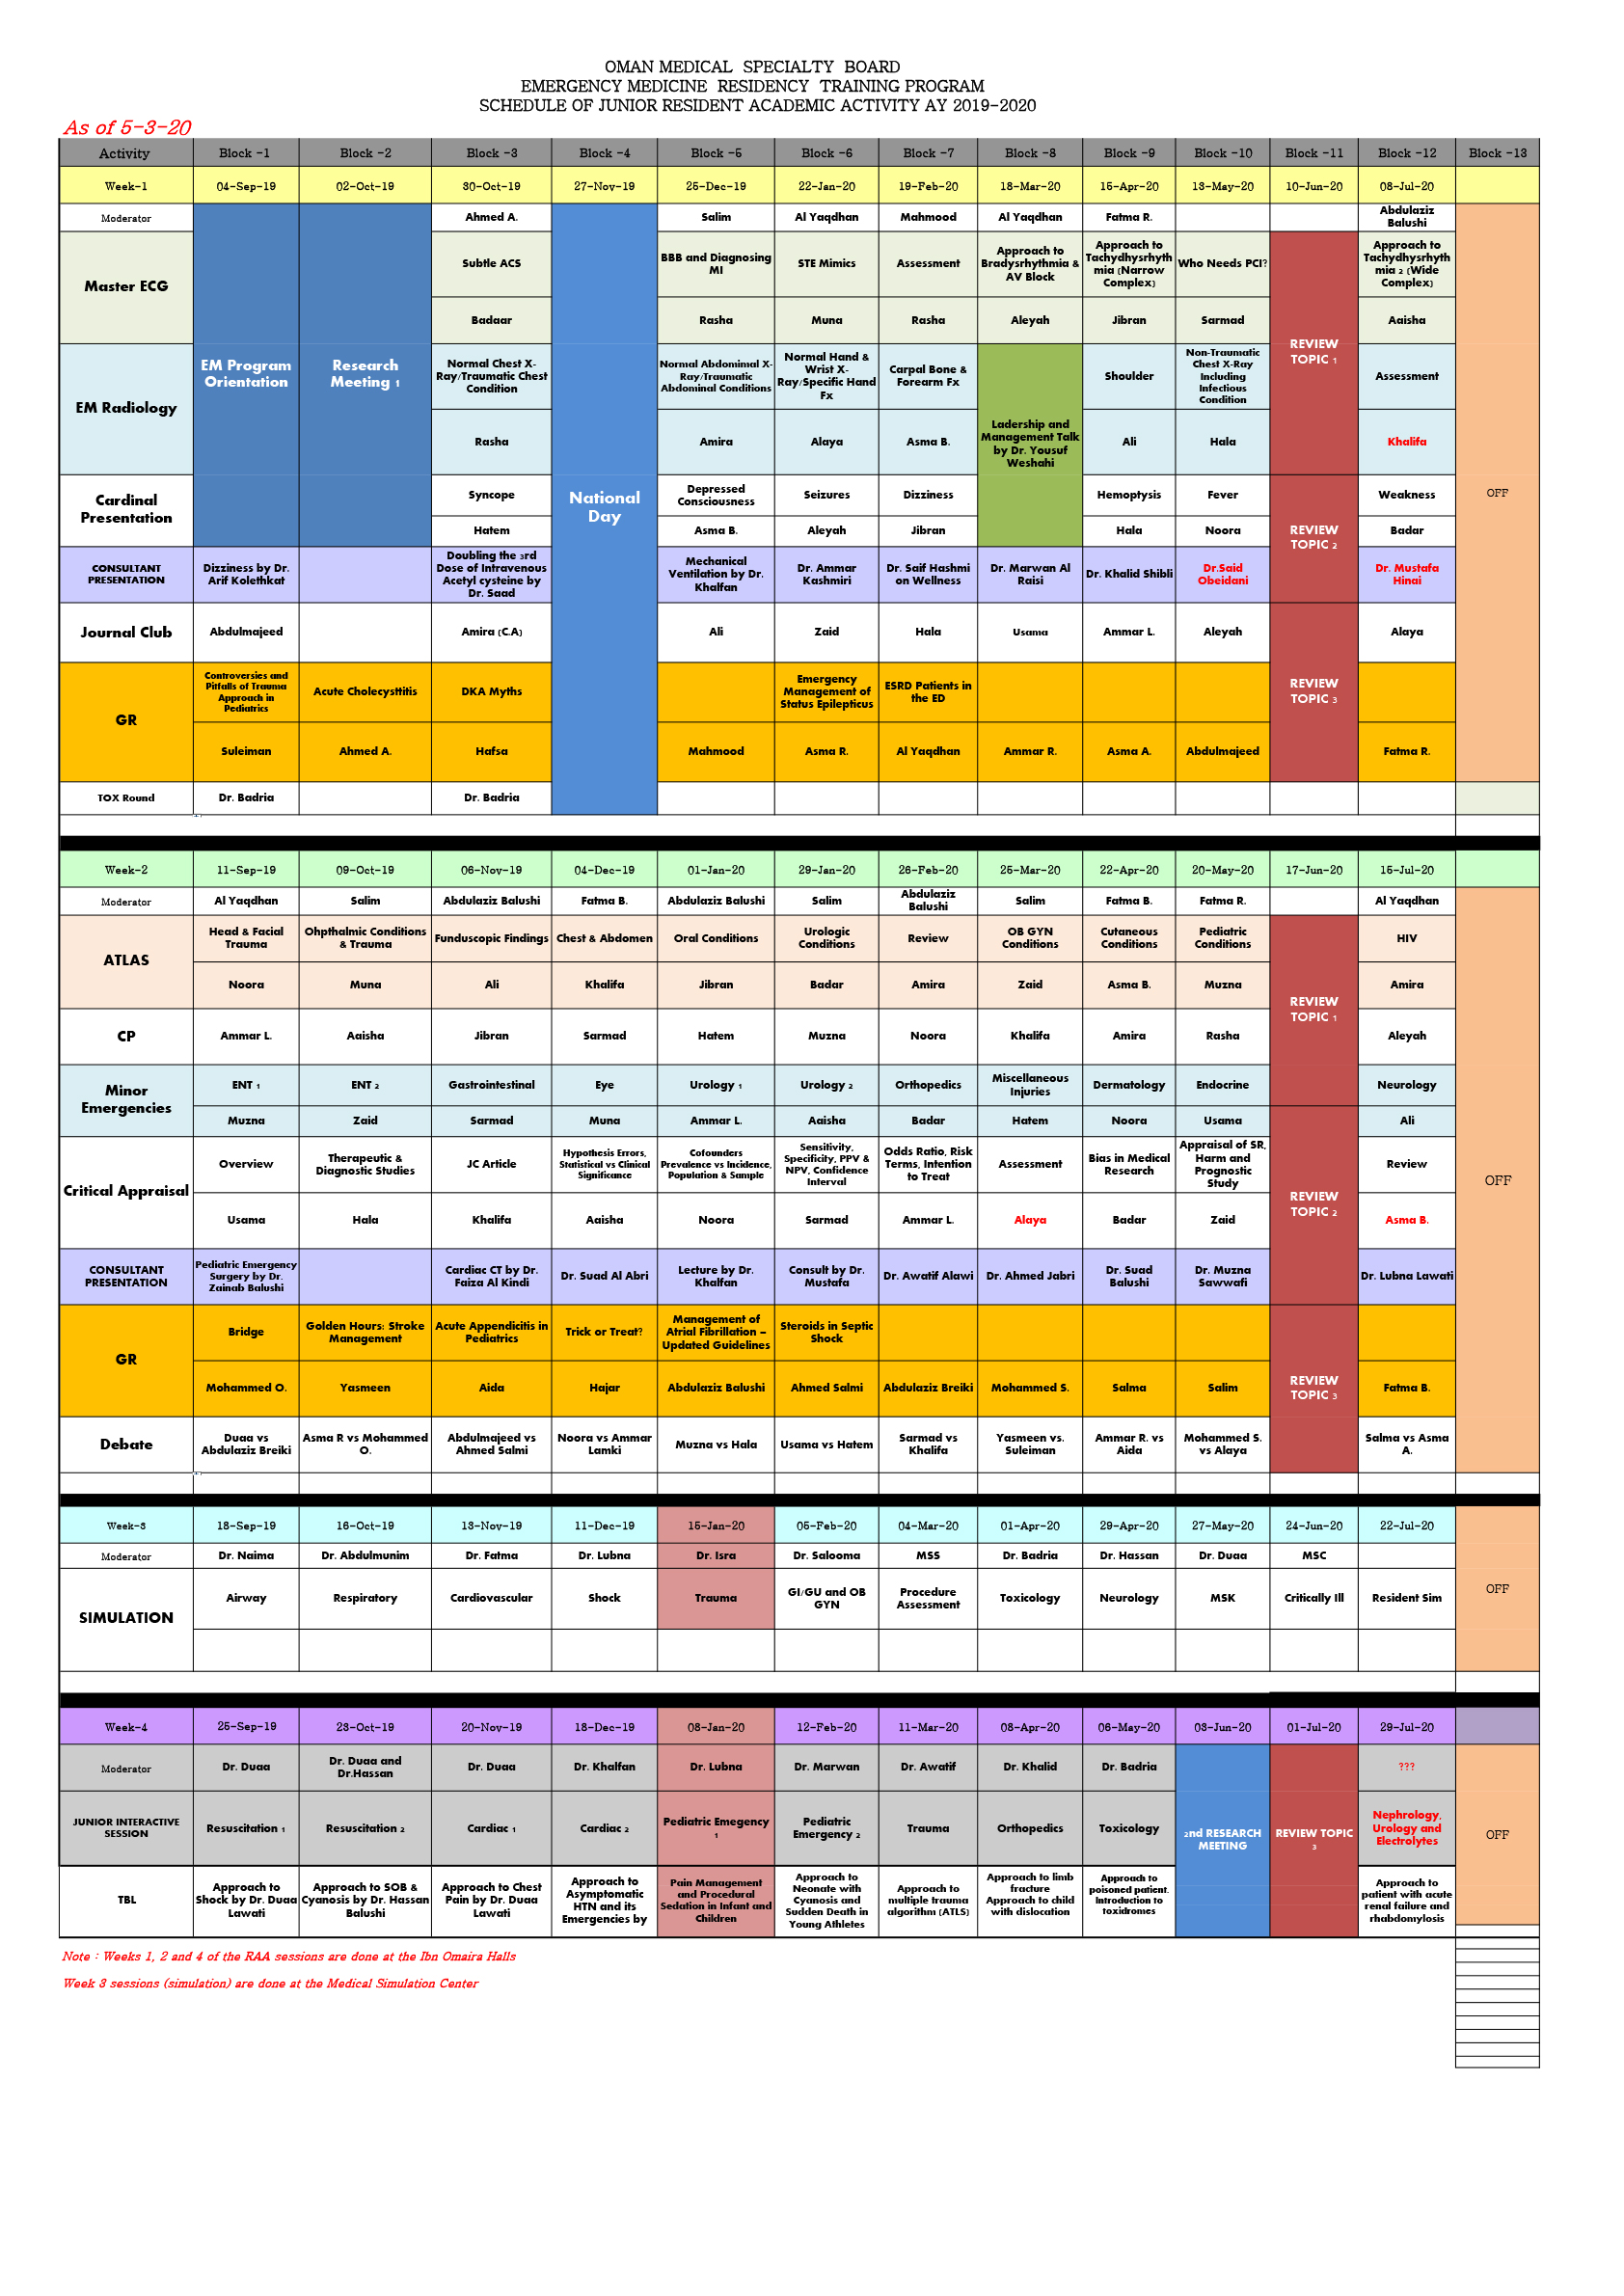 EM Resident Academic Activity Schedules